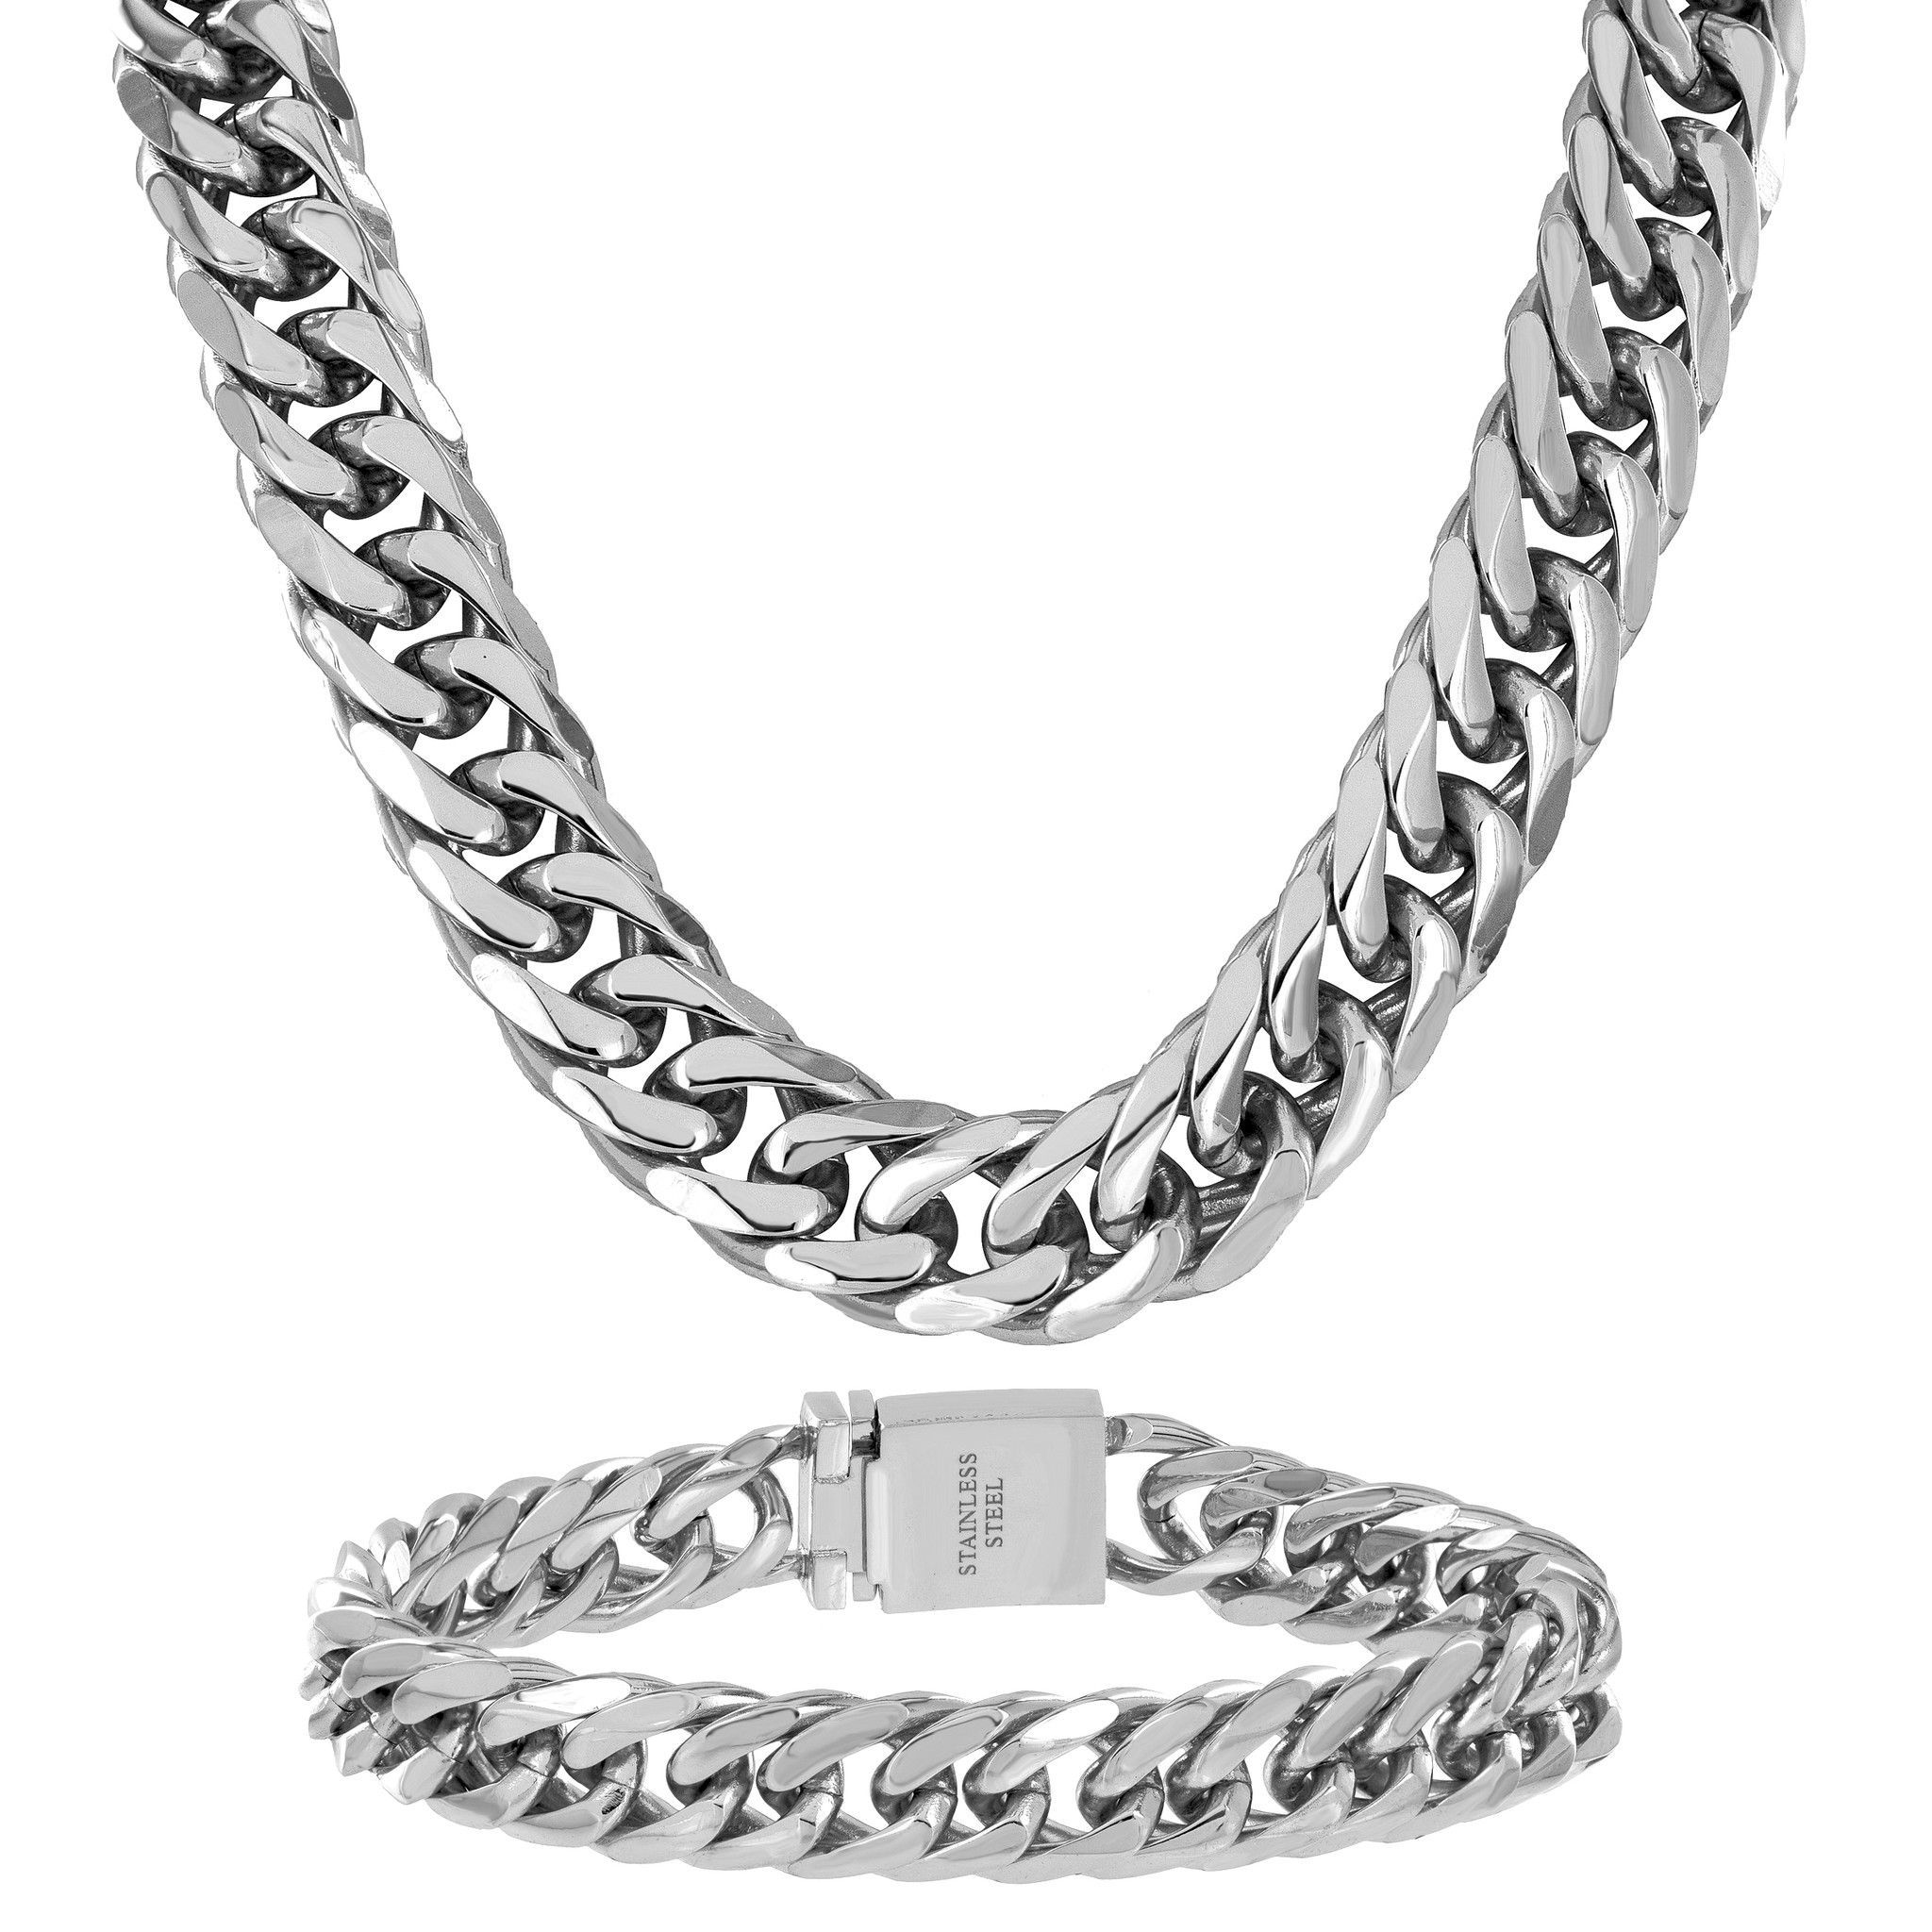 Mens Miami Cuban Necklaces White Gold Finish Stainless Steel Thick